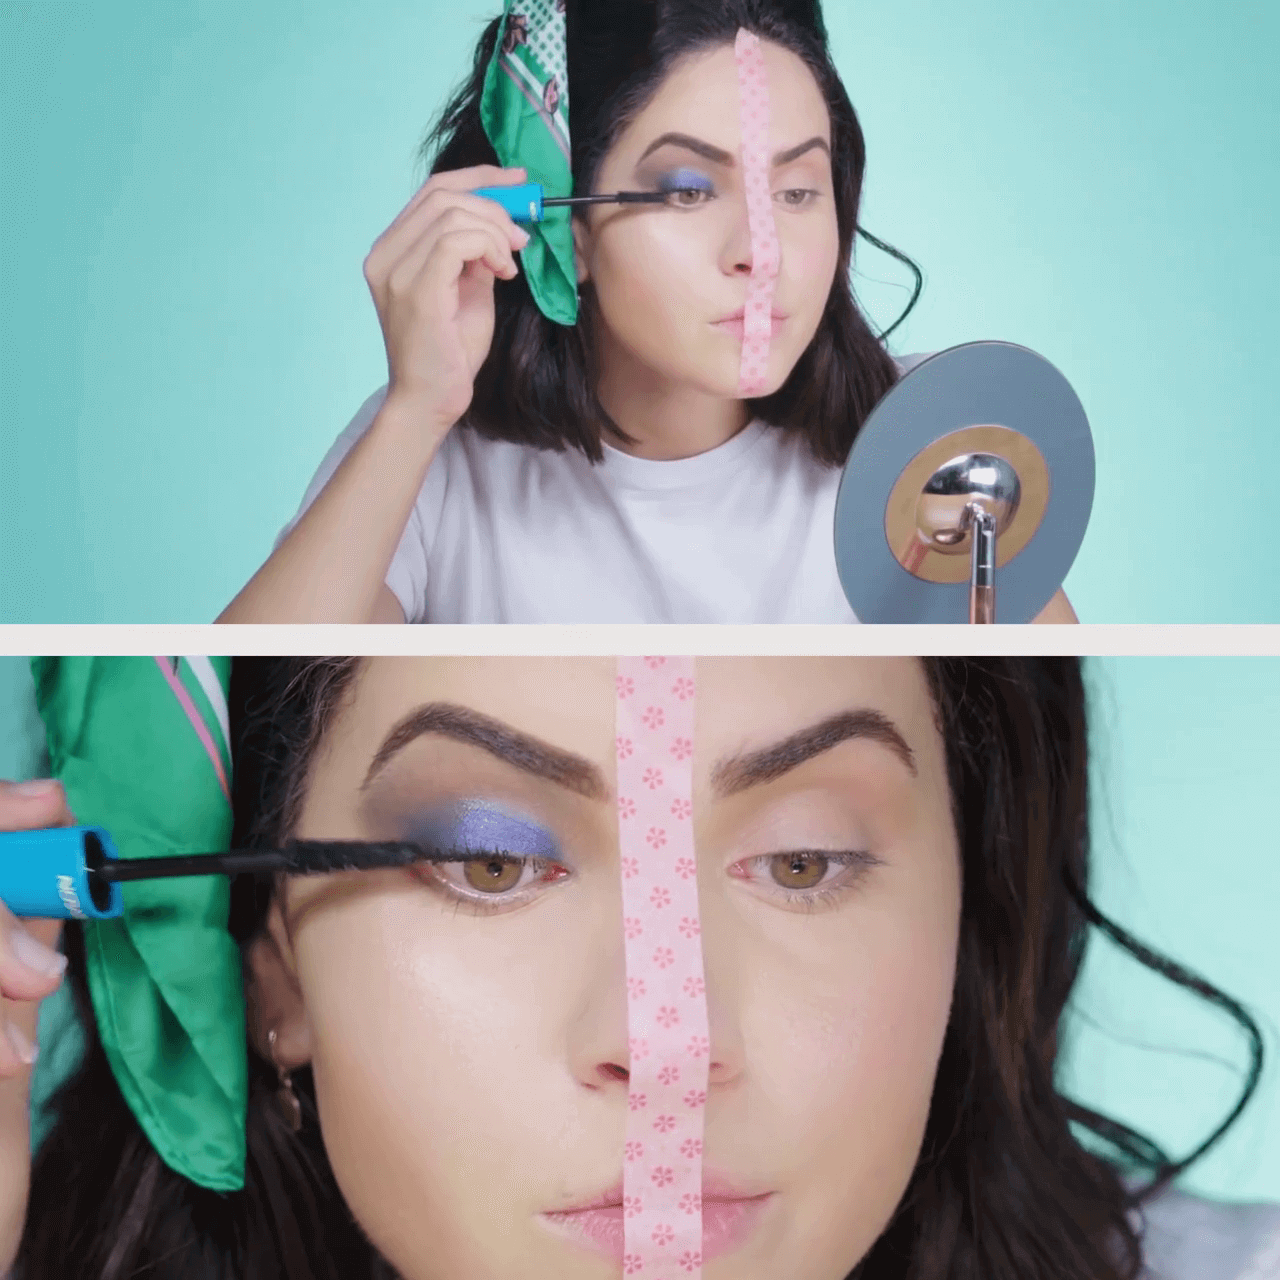 Internet Makeup Tricks vs Real Life Makeup